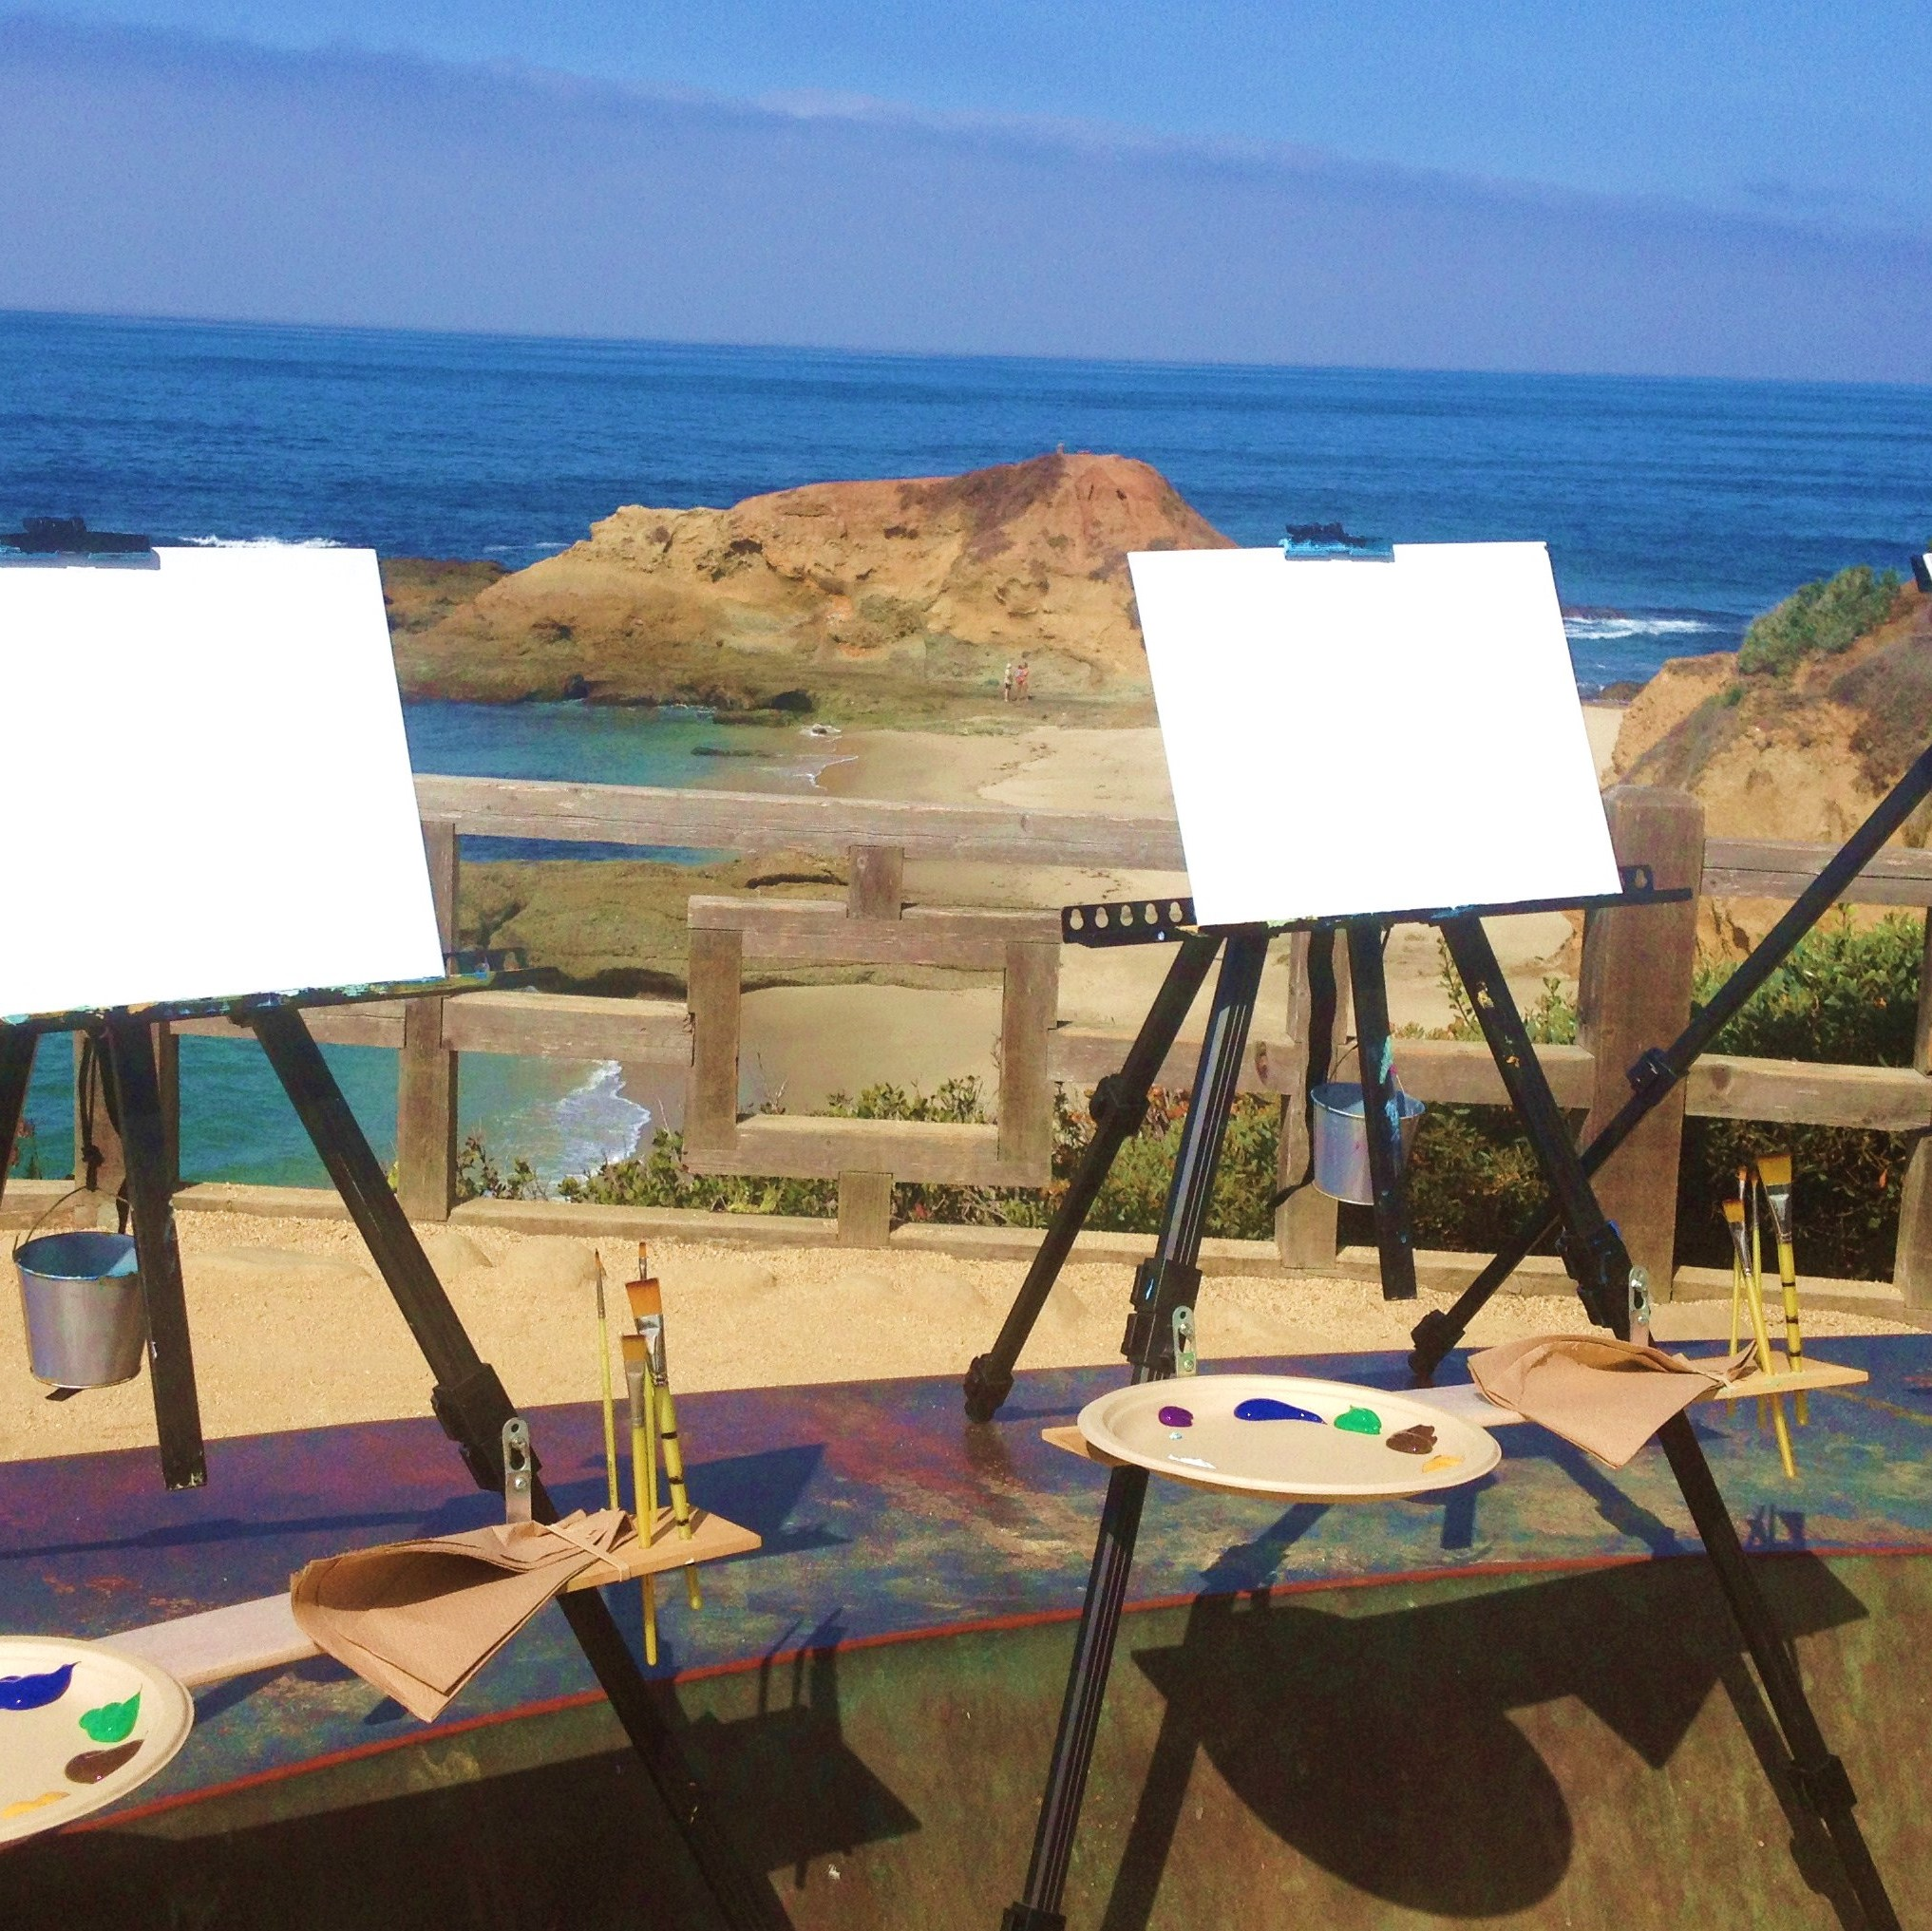 Plein Air - Plein air events are a great way to enjoy the outdoors and relax while painting on location. Plein air is a phrase from the French meaning